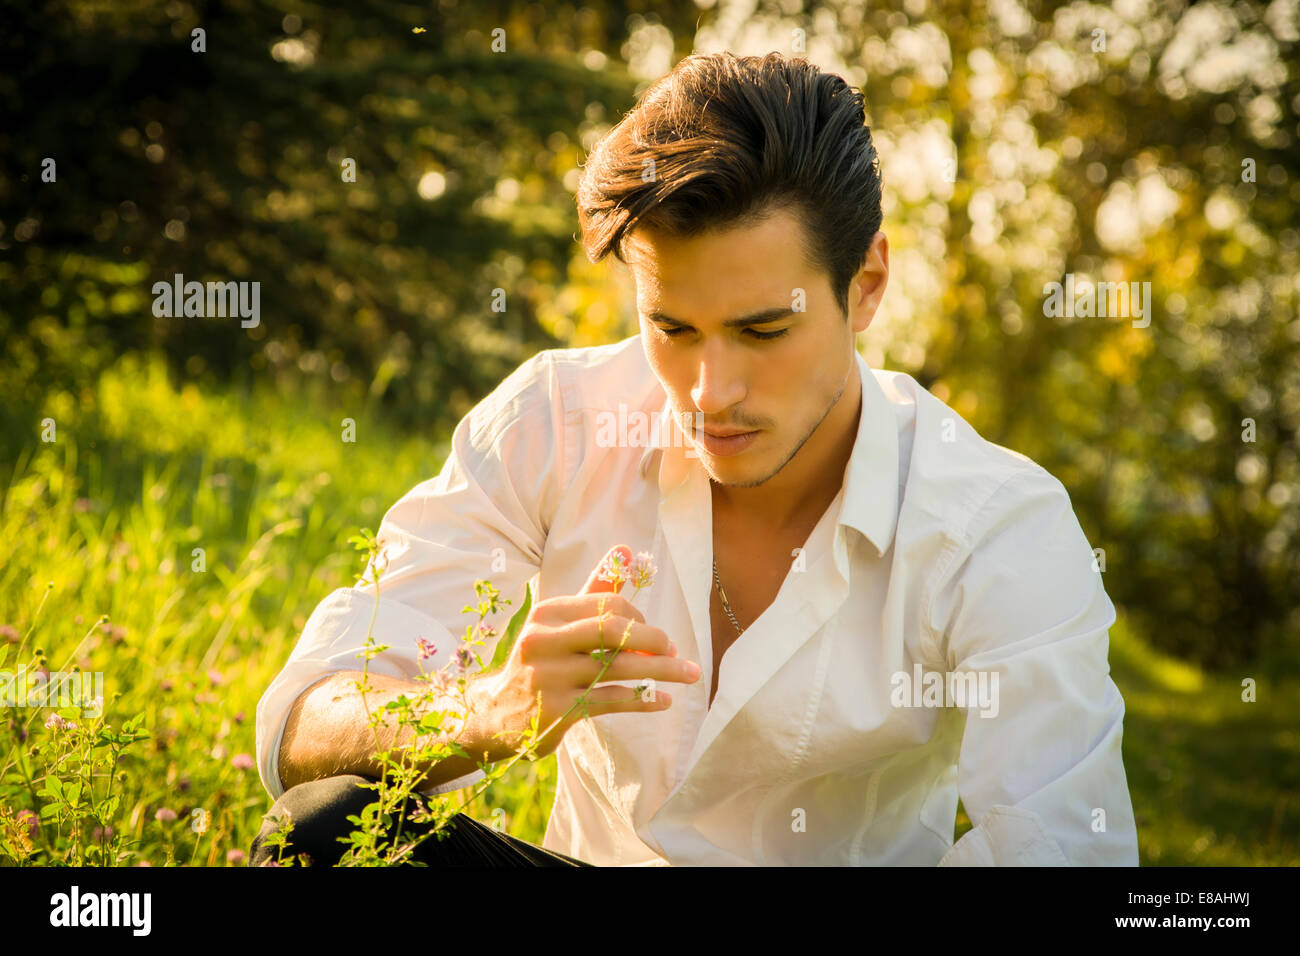 Nostalgic young man dreaming or reminiscing in the park as he kneels in green grass touching a flower with a look - Stock Image